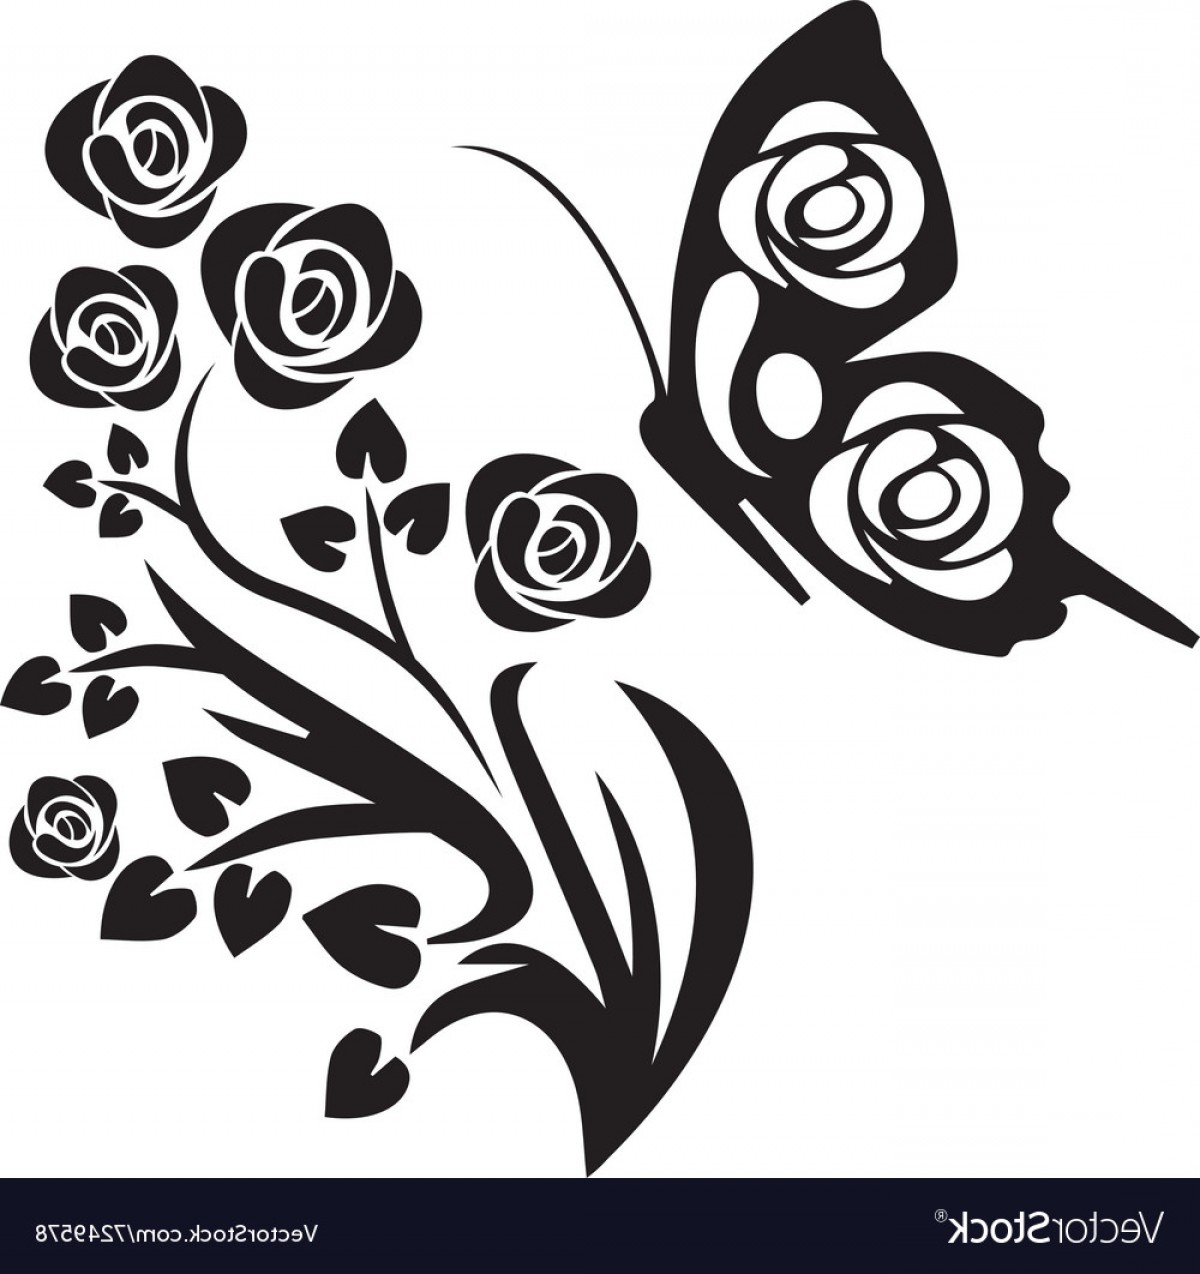 Butter Fly And Flower Vector Black And White: Black Butterfly And Flowers Vector